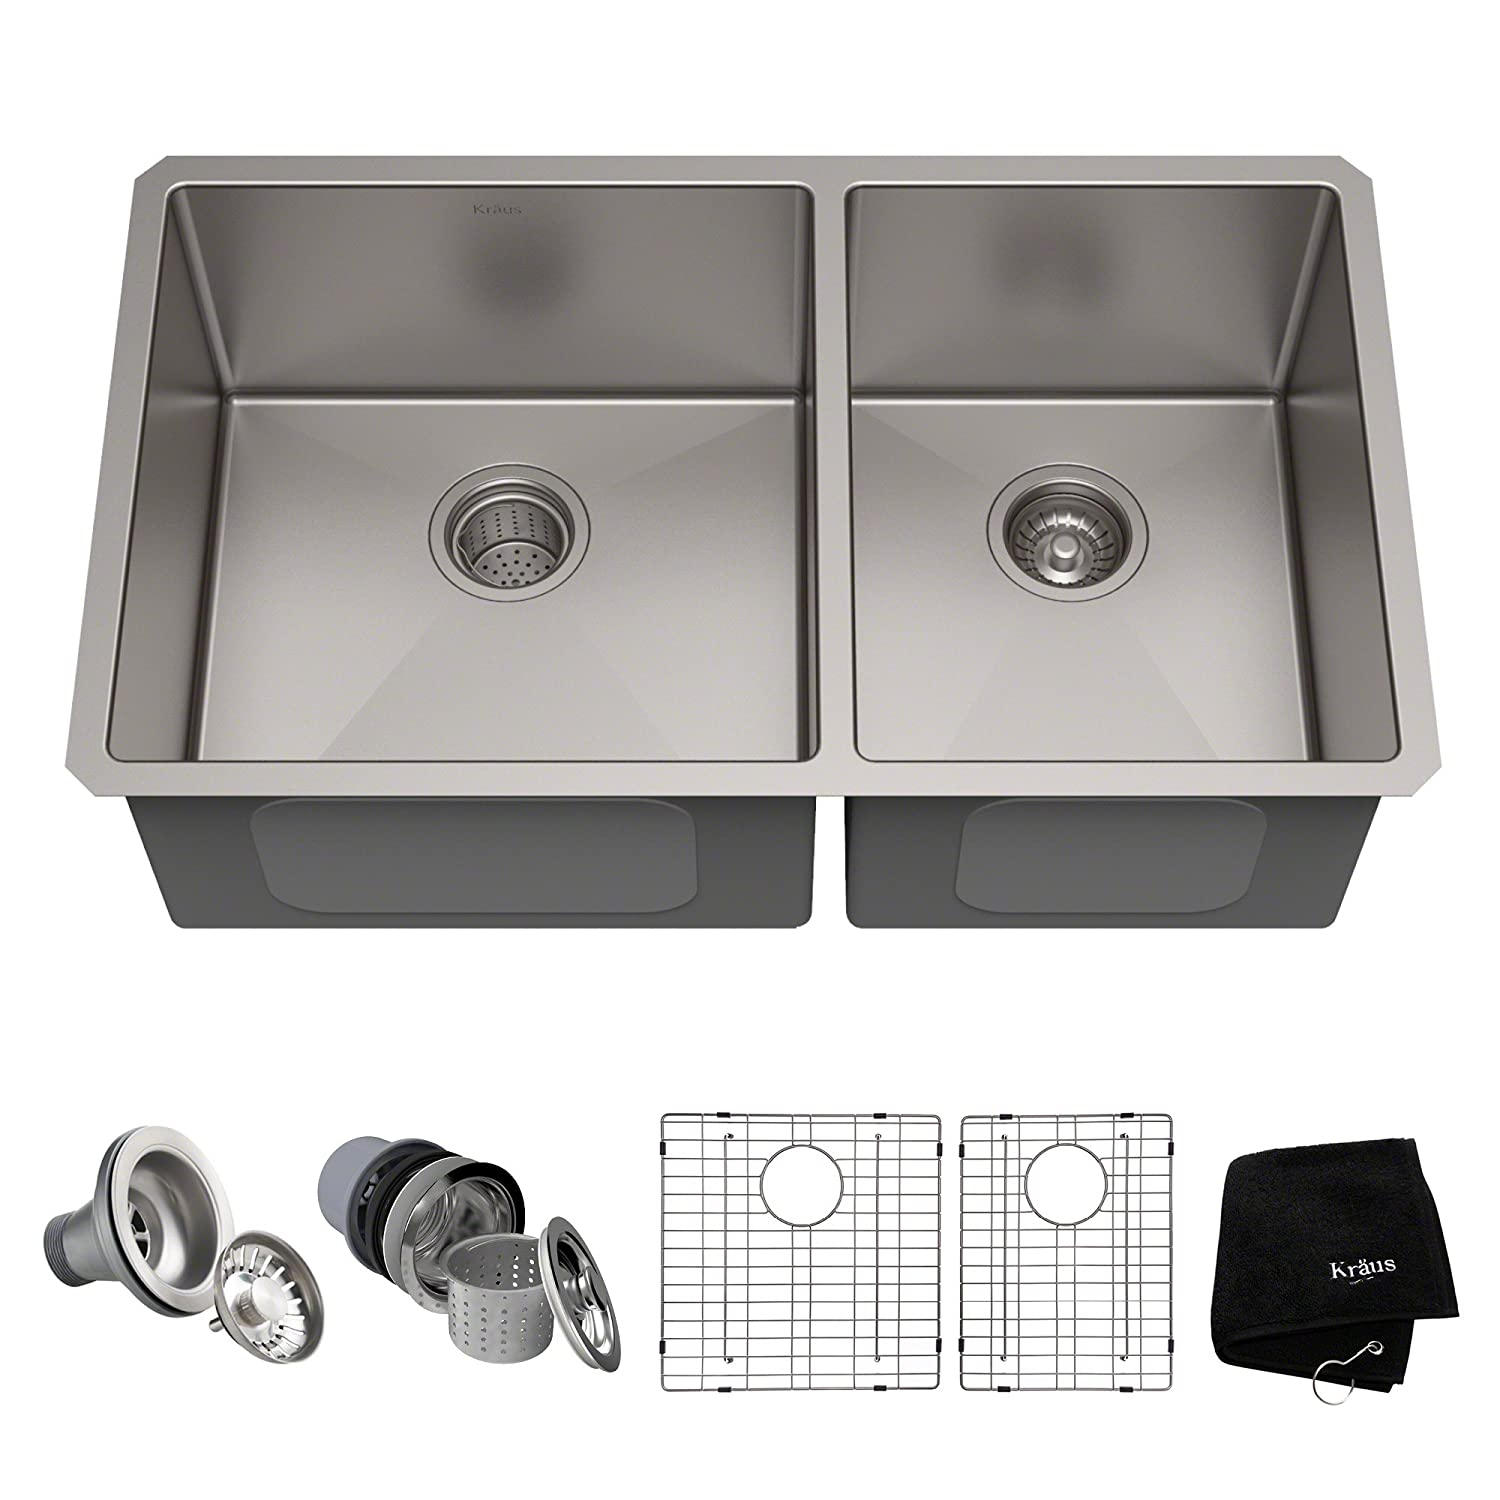 Kraus Standart PRO 33-inch 16 Gauge Undermount 60 40 Double Bowl Stainless Steel Kitchen Sink, KHU103-33